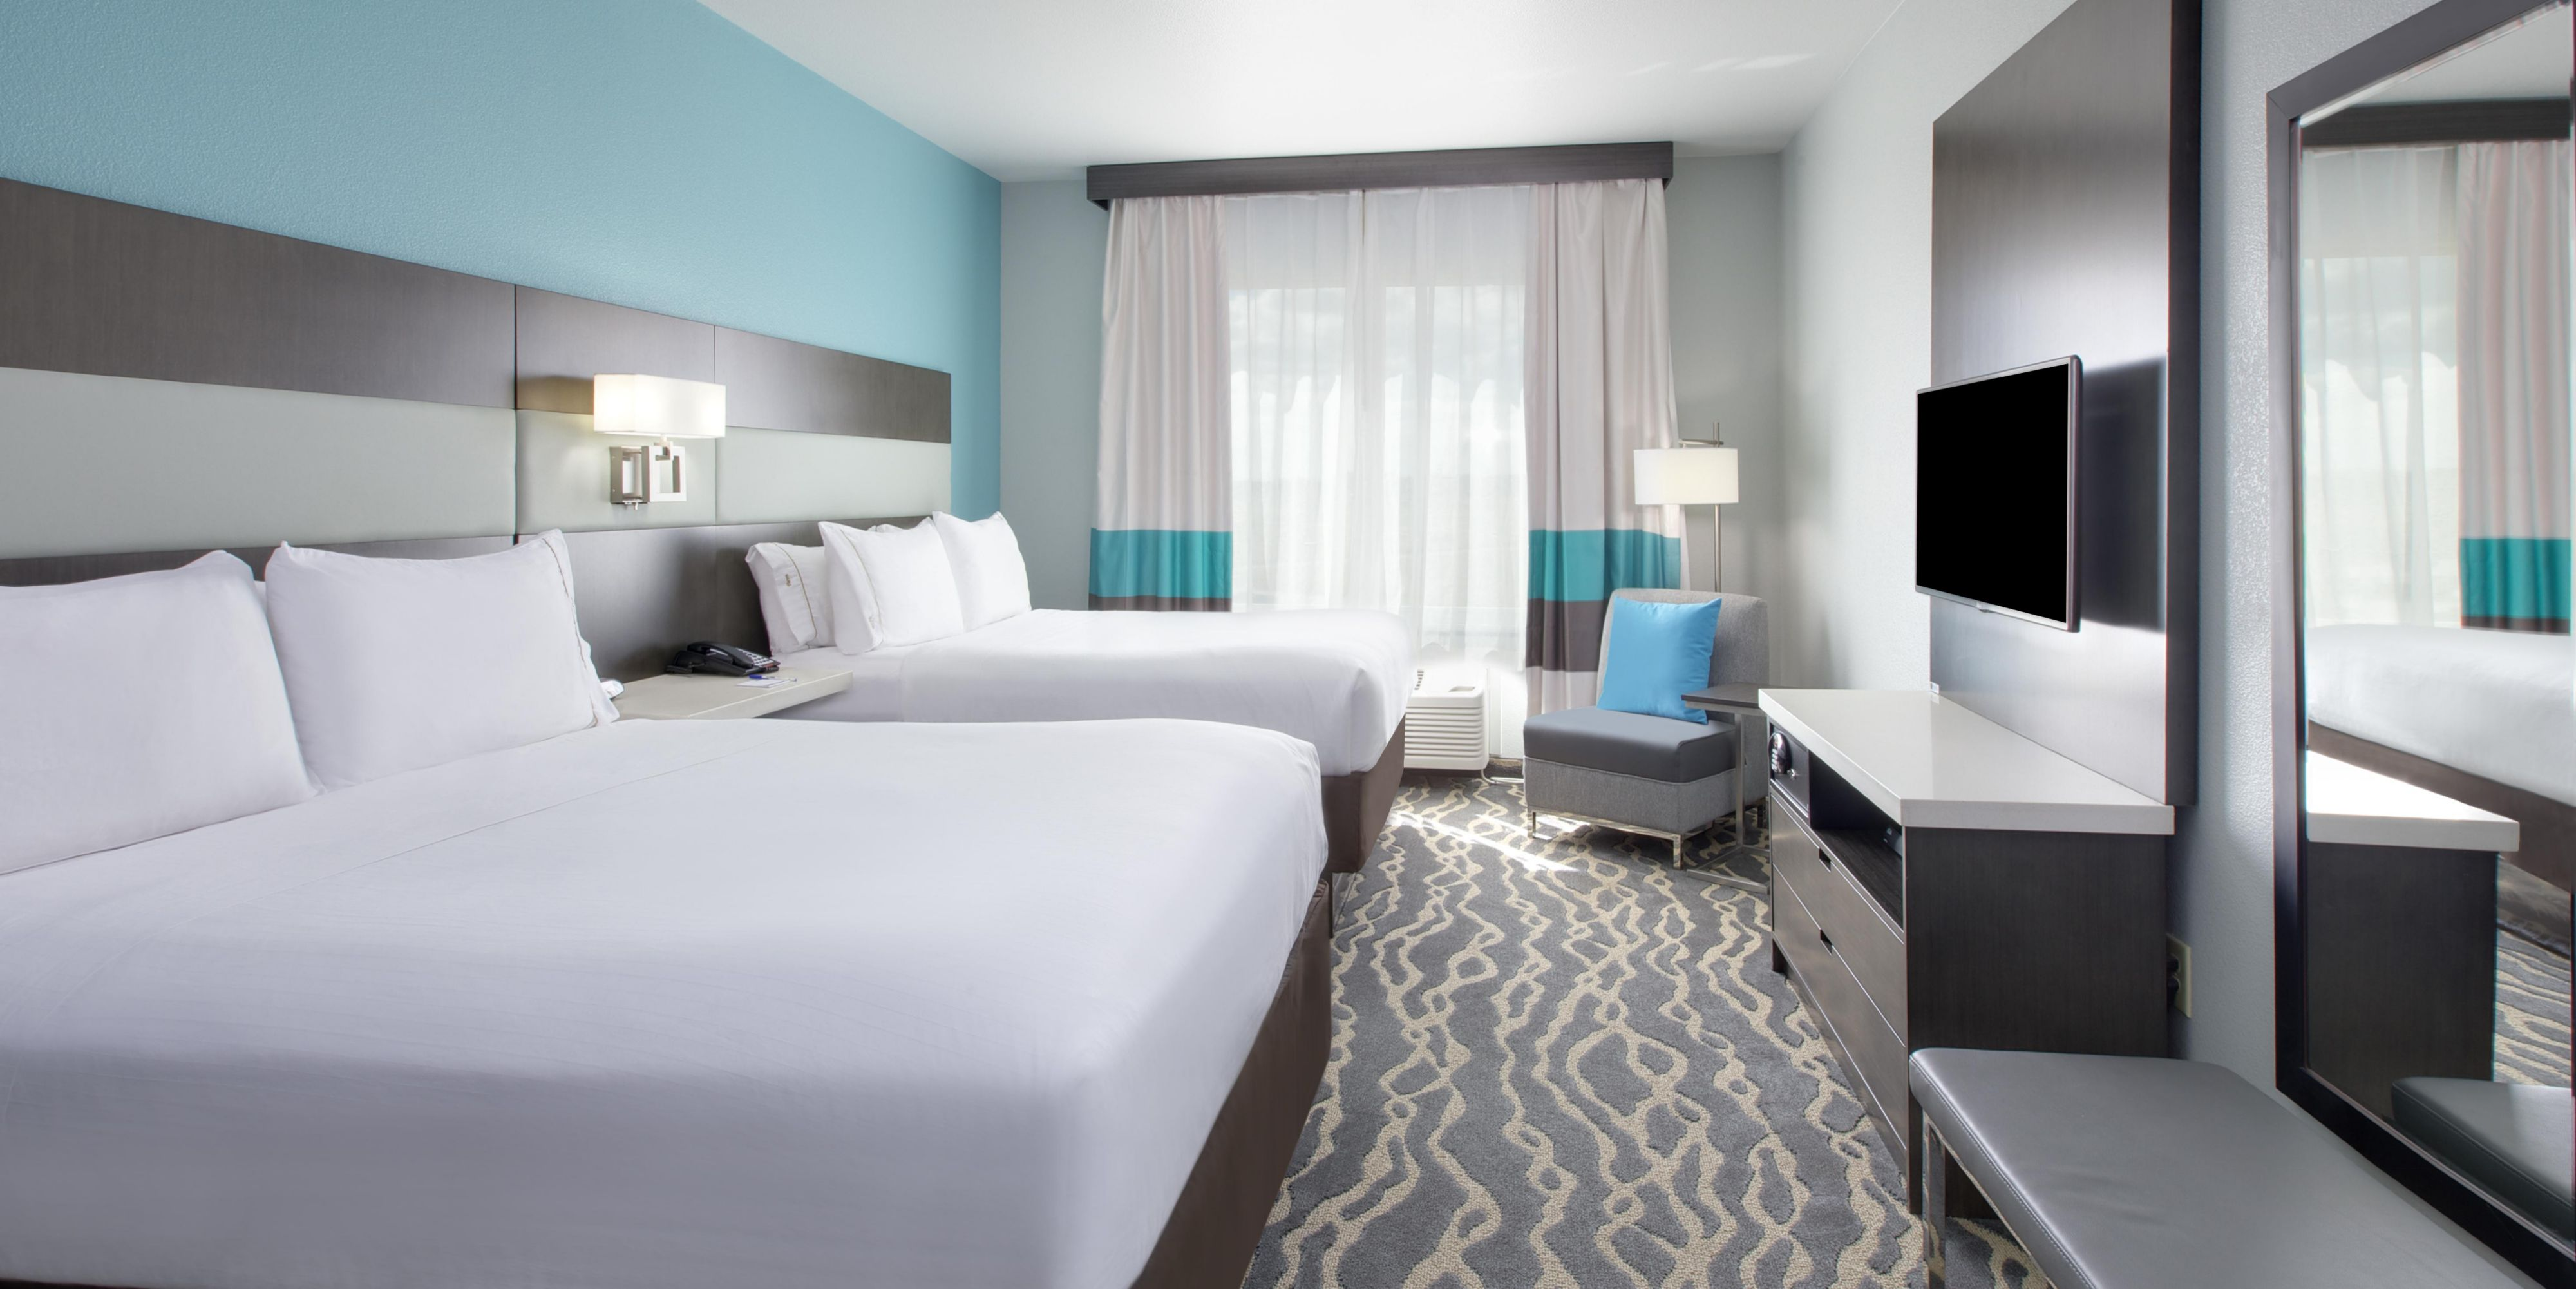 Holiday Inn Express & Suites Fort Worth North Northlake Hotel by IHG